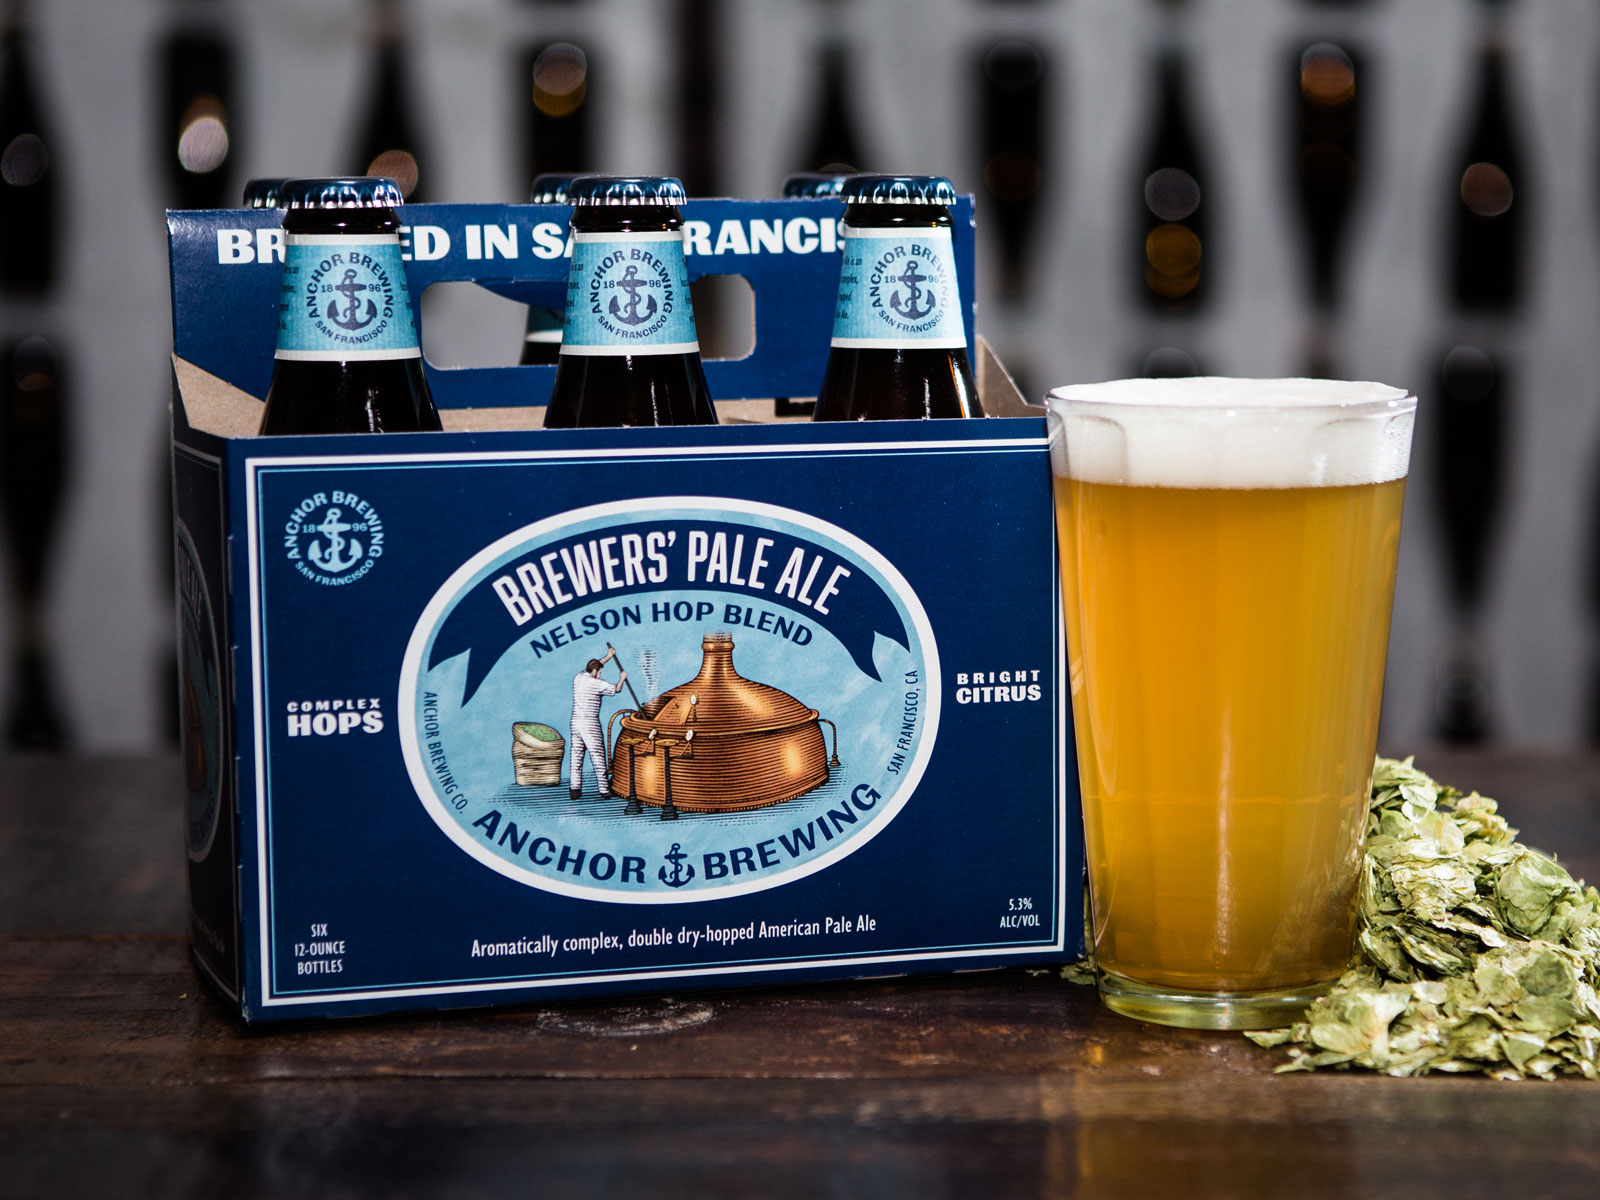 Brewers' Pale Ale (Nelson Hop Blend) by Anchor Brewing